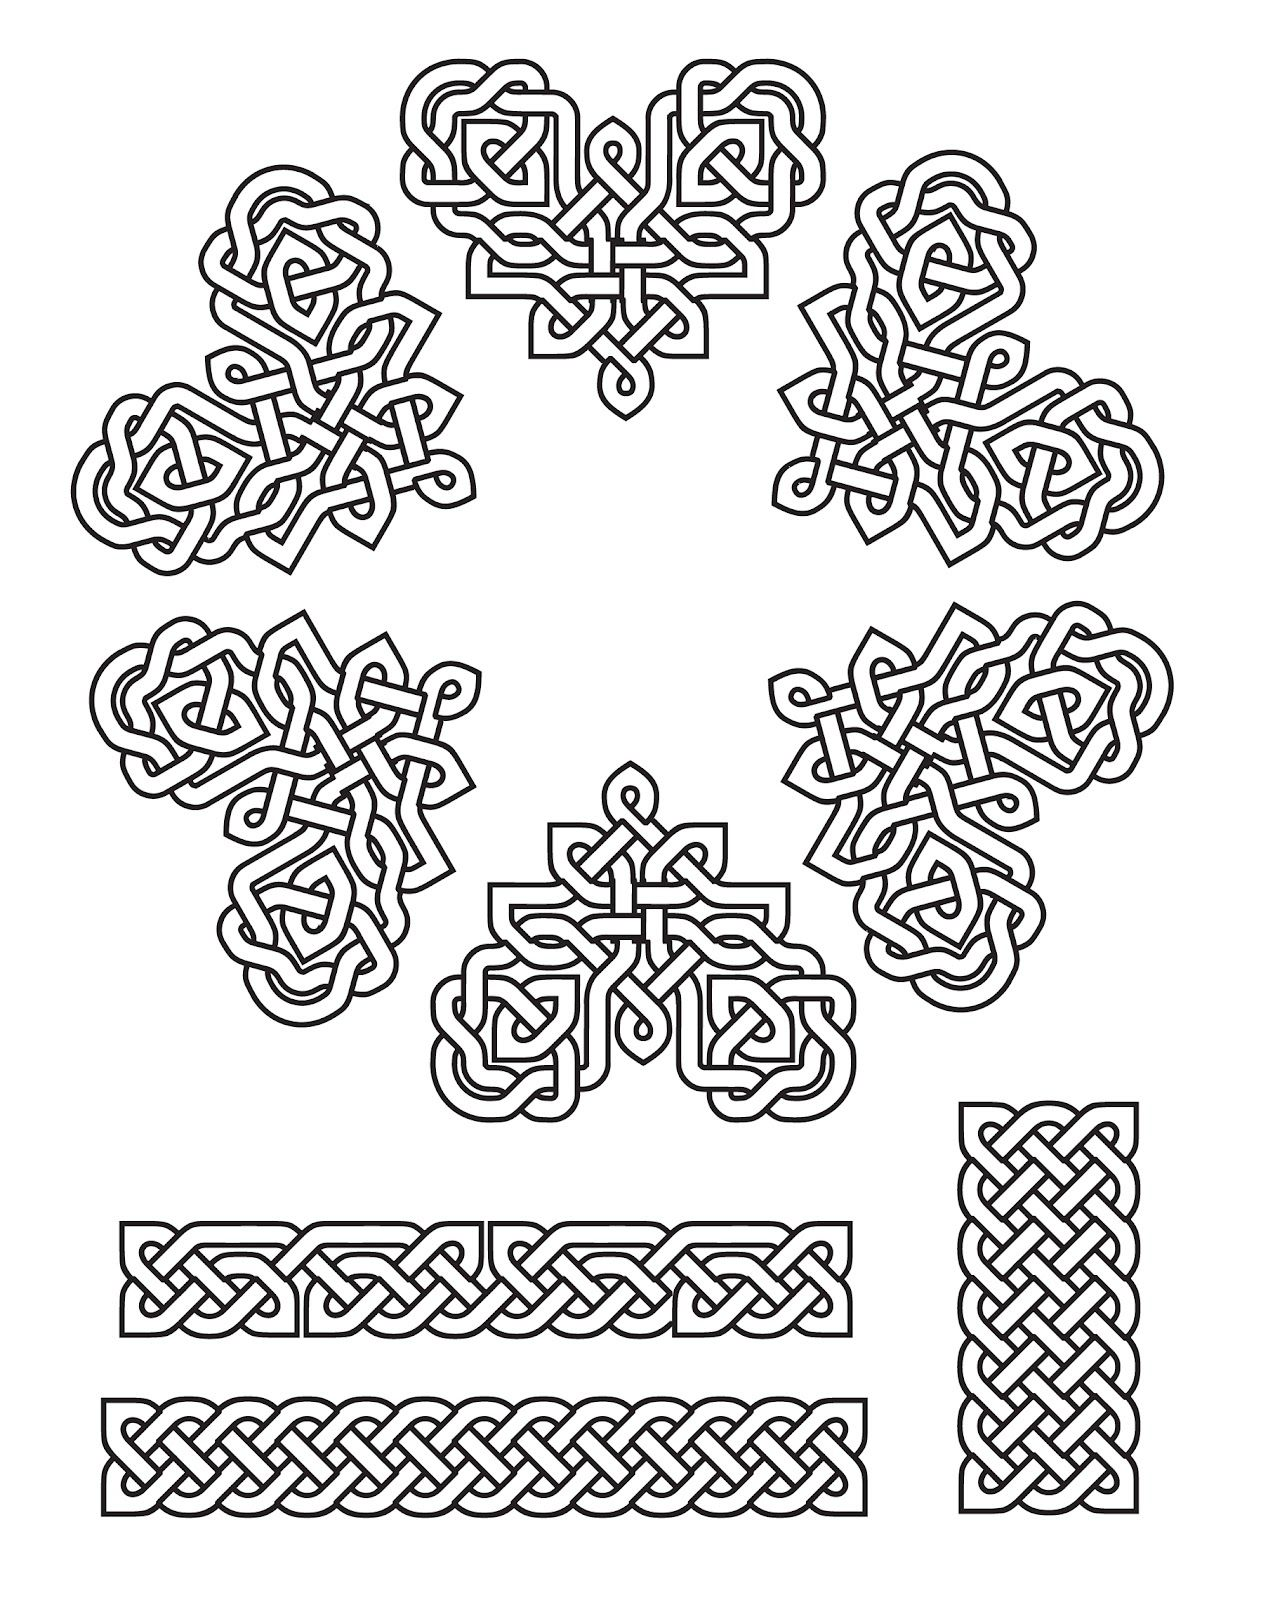 Celtic knot patterns created using celtic knot font! | Art and craft ...